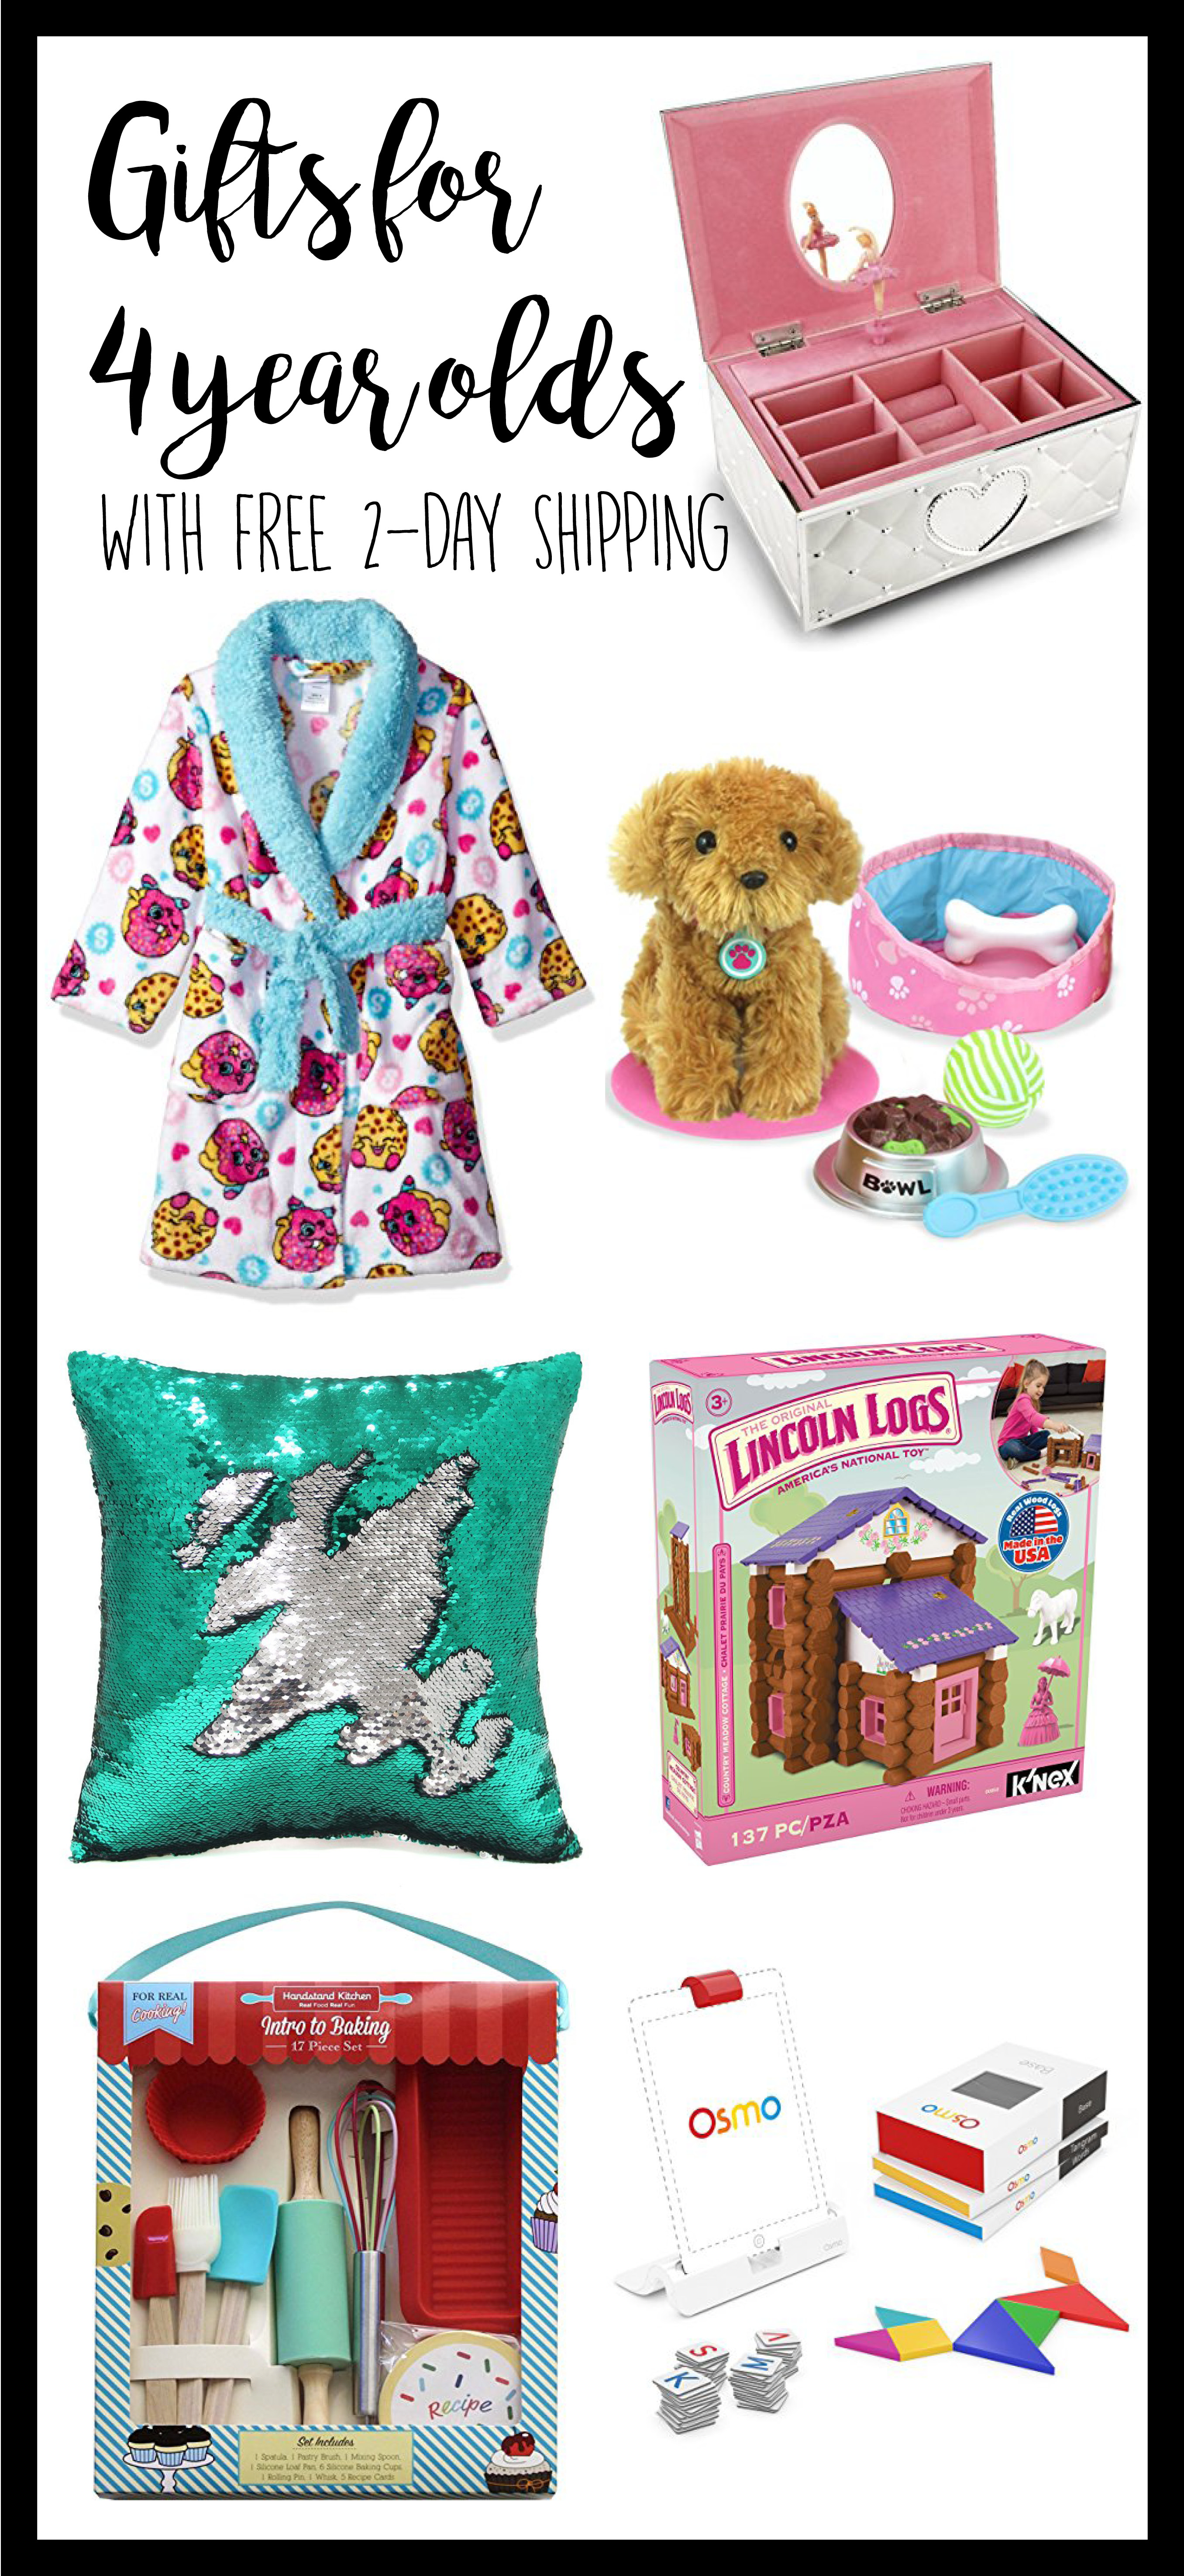 4 year old christmas gift ideas girl